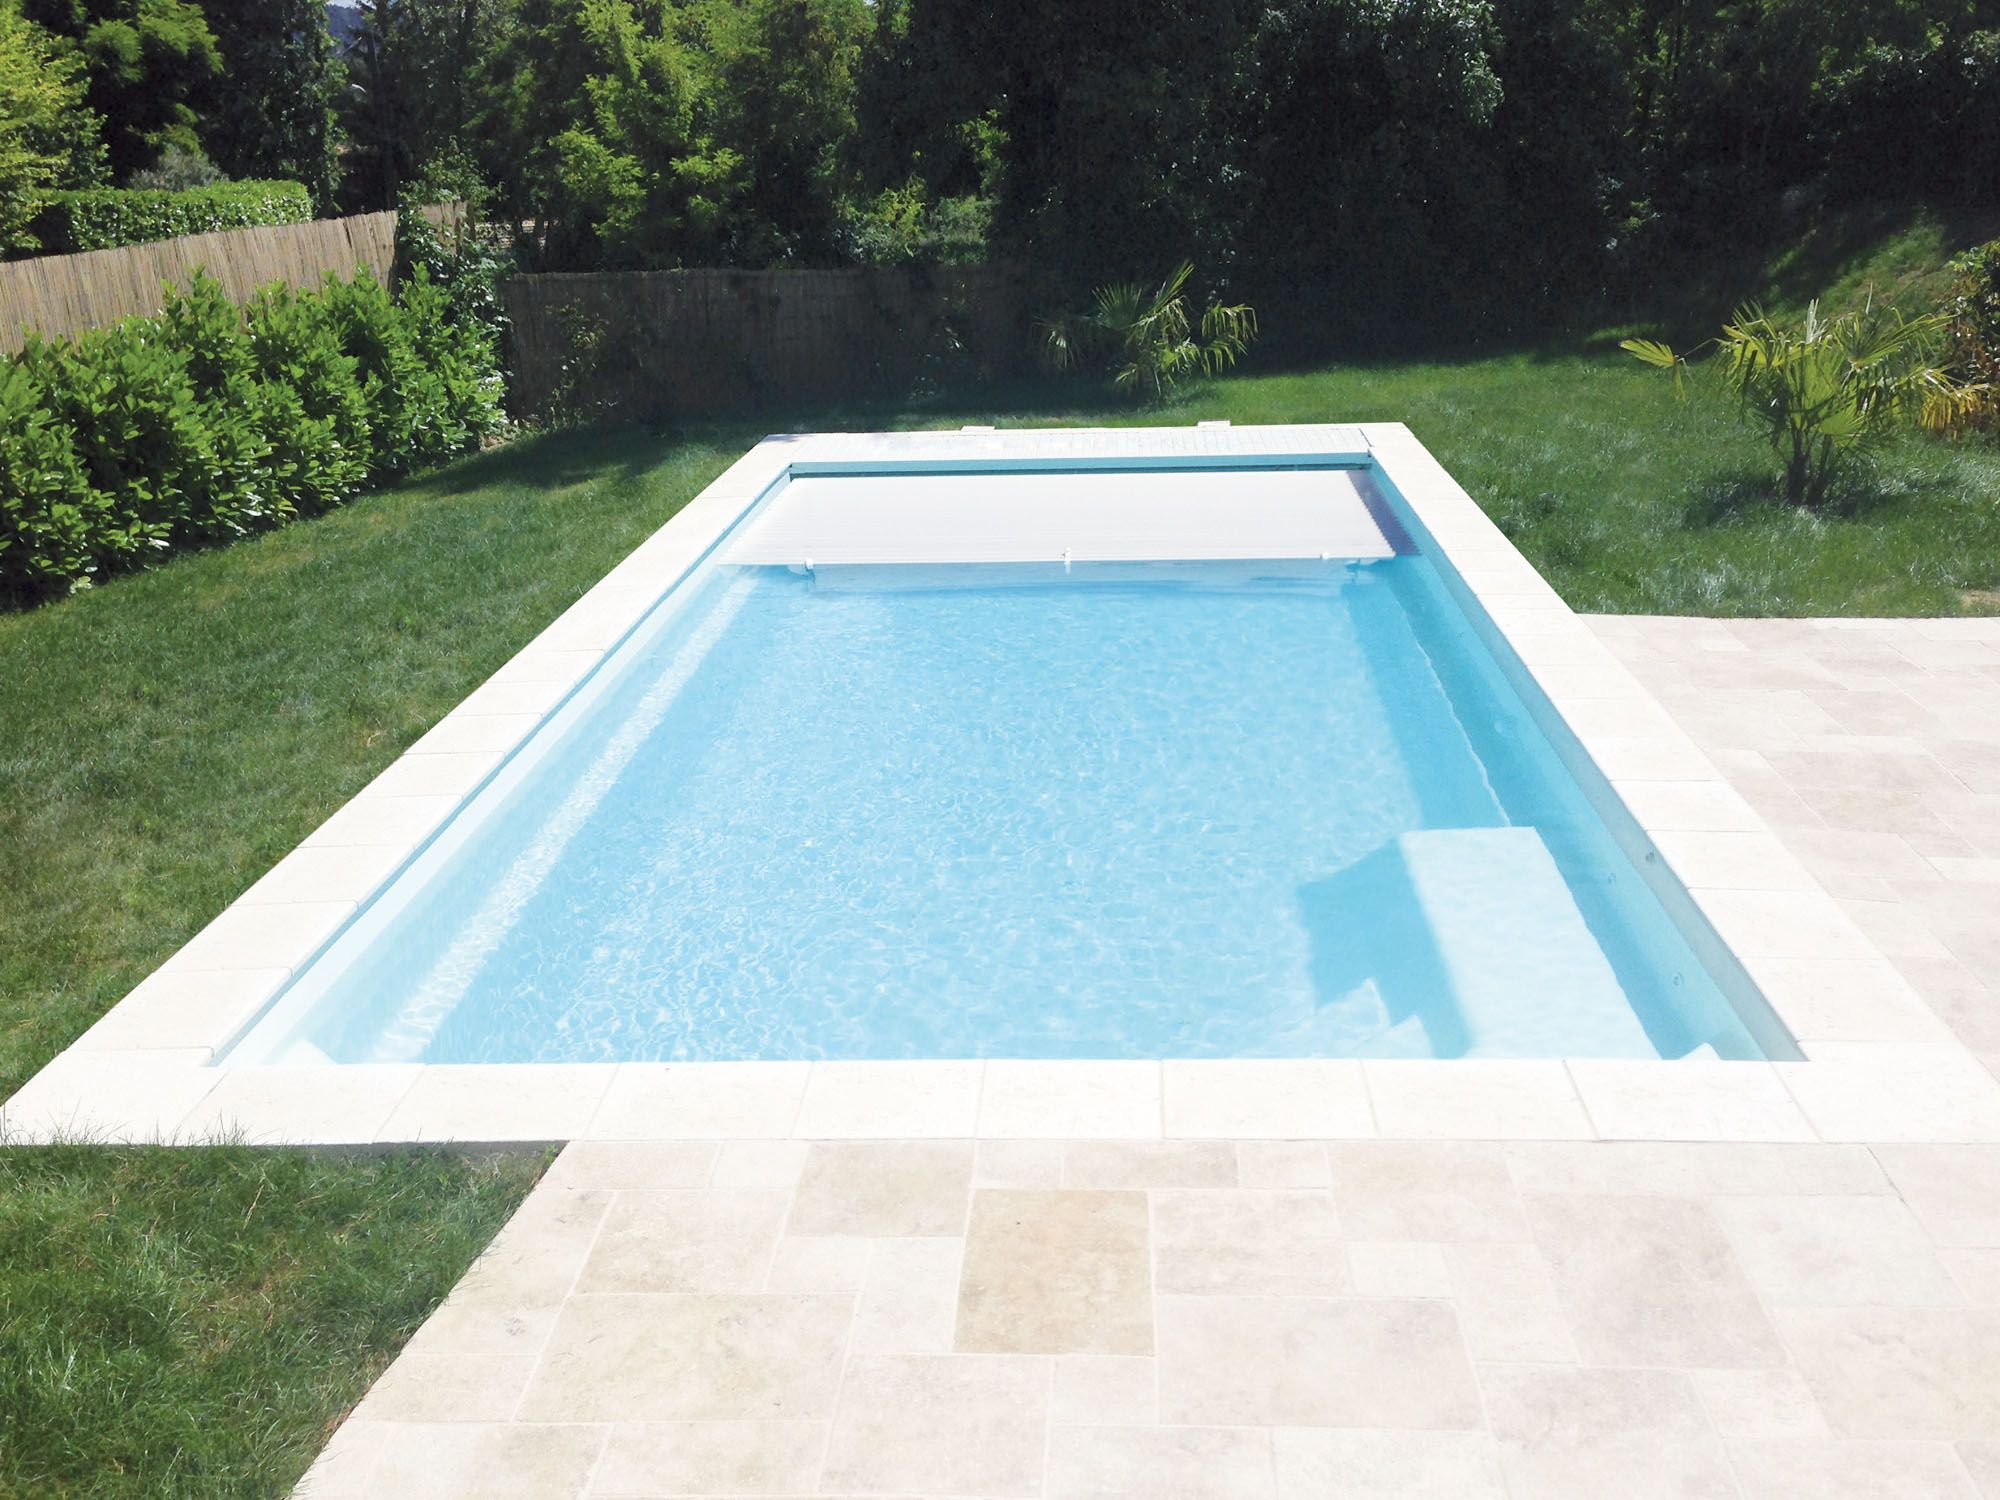 Piscine coque polyester partition 104 fabrication - Entourage piscine hors sol ...